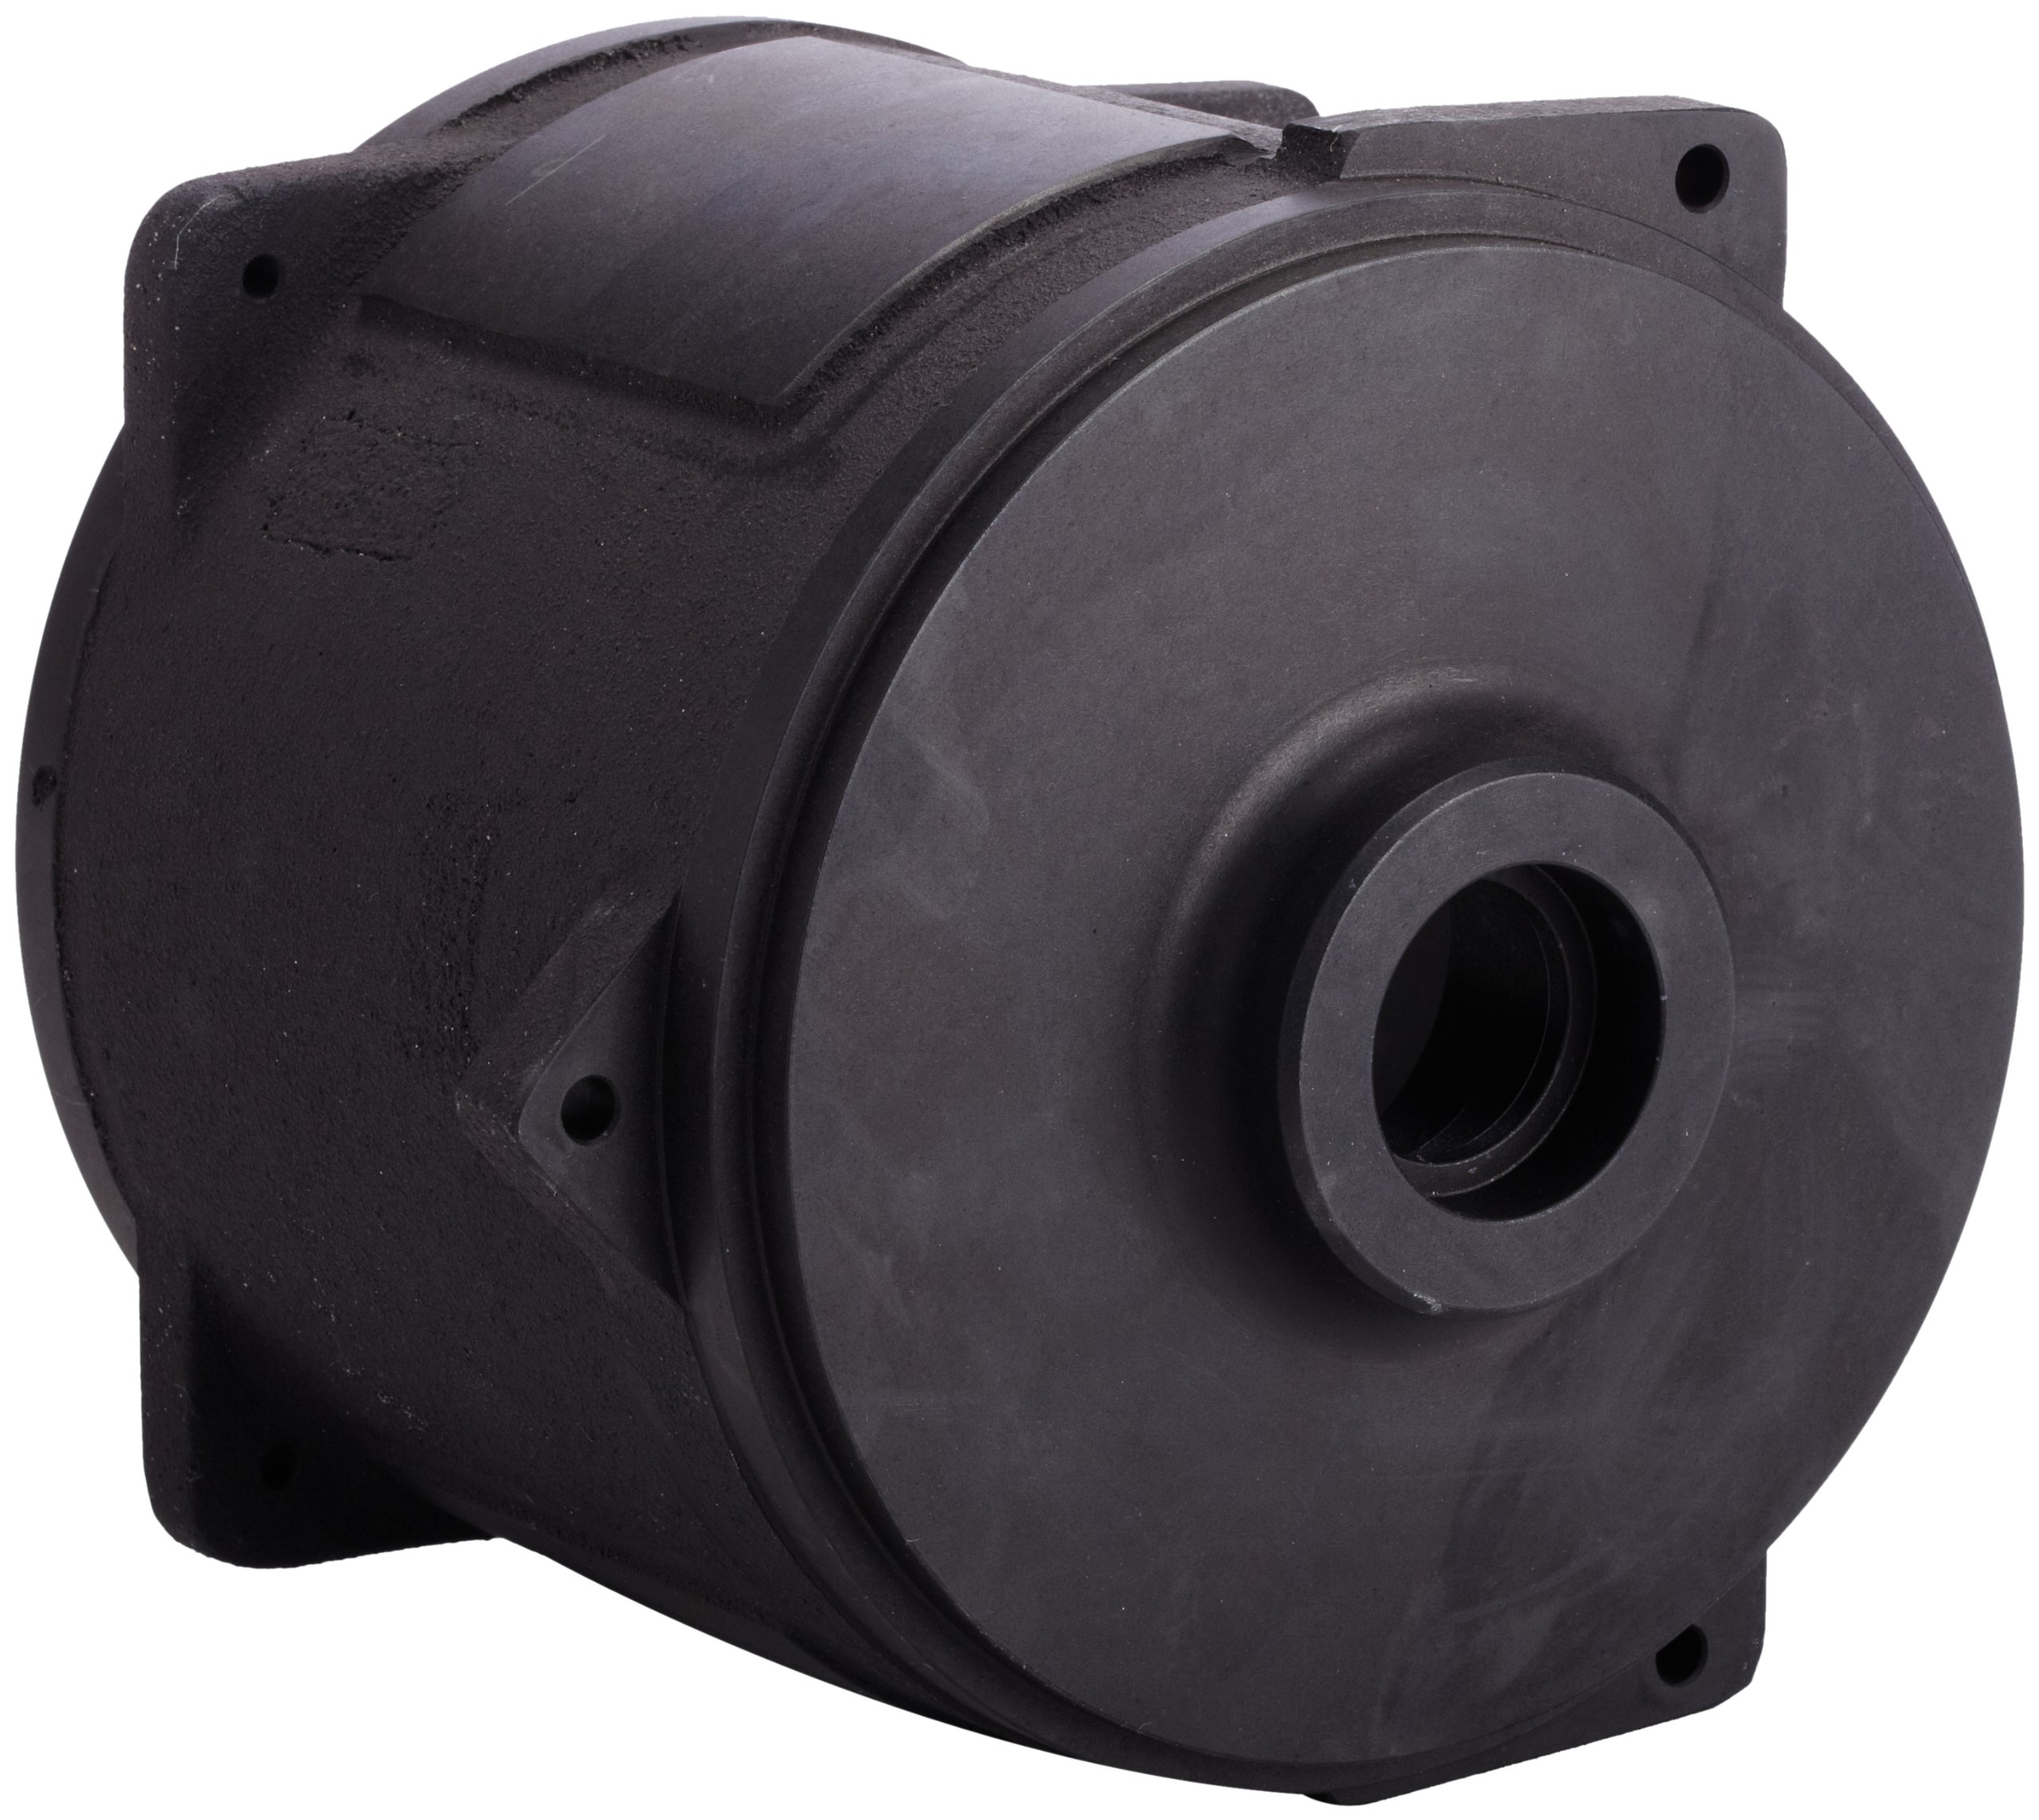 Hayward RCX411682 3/4-Horsepower NS Motor Housing Replacement for Select Hayward Commercial Cleaner and Sand Filter